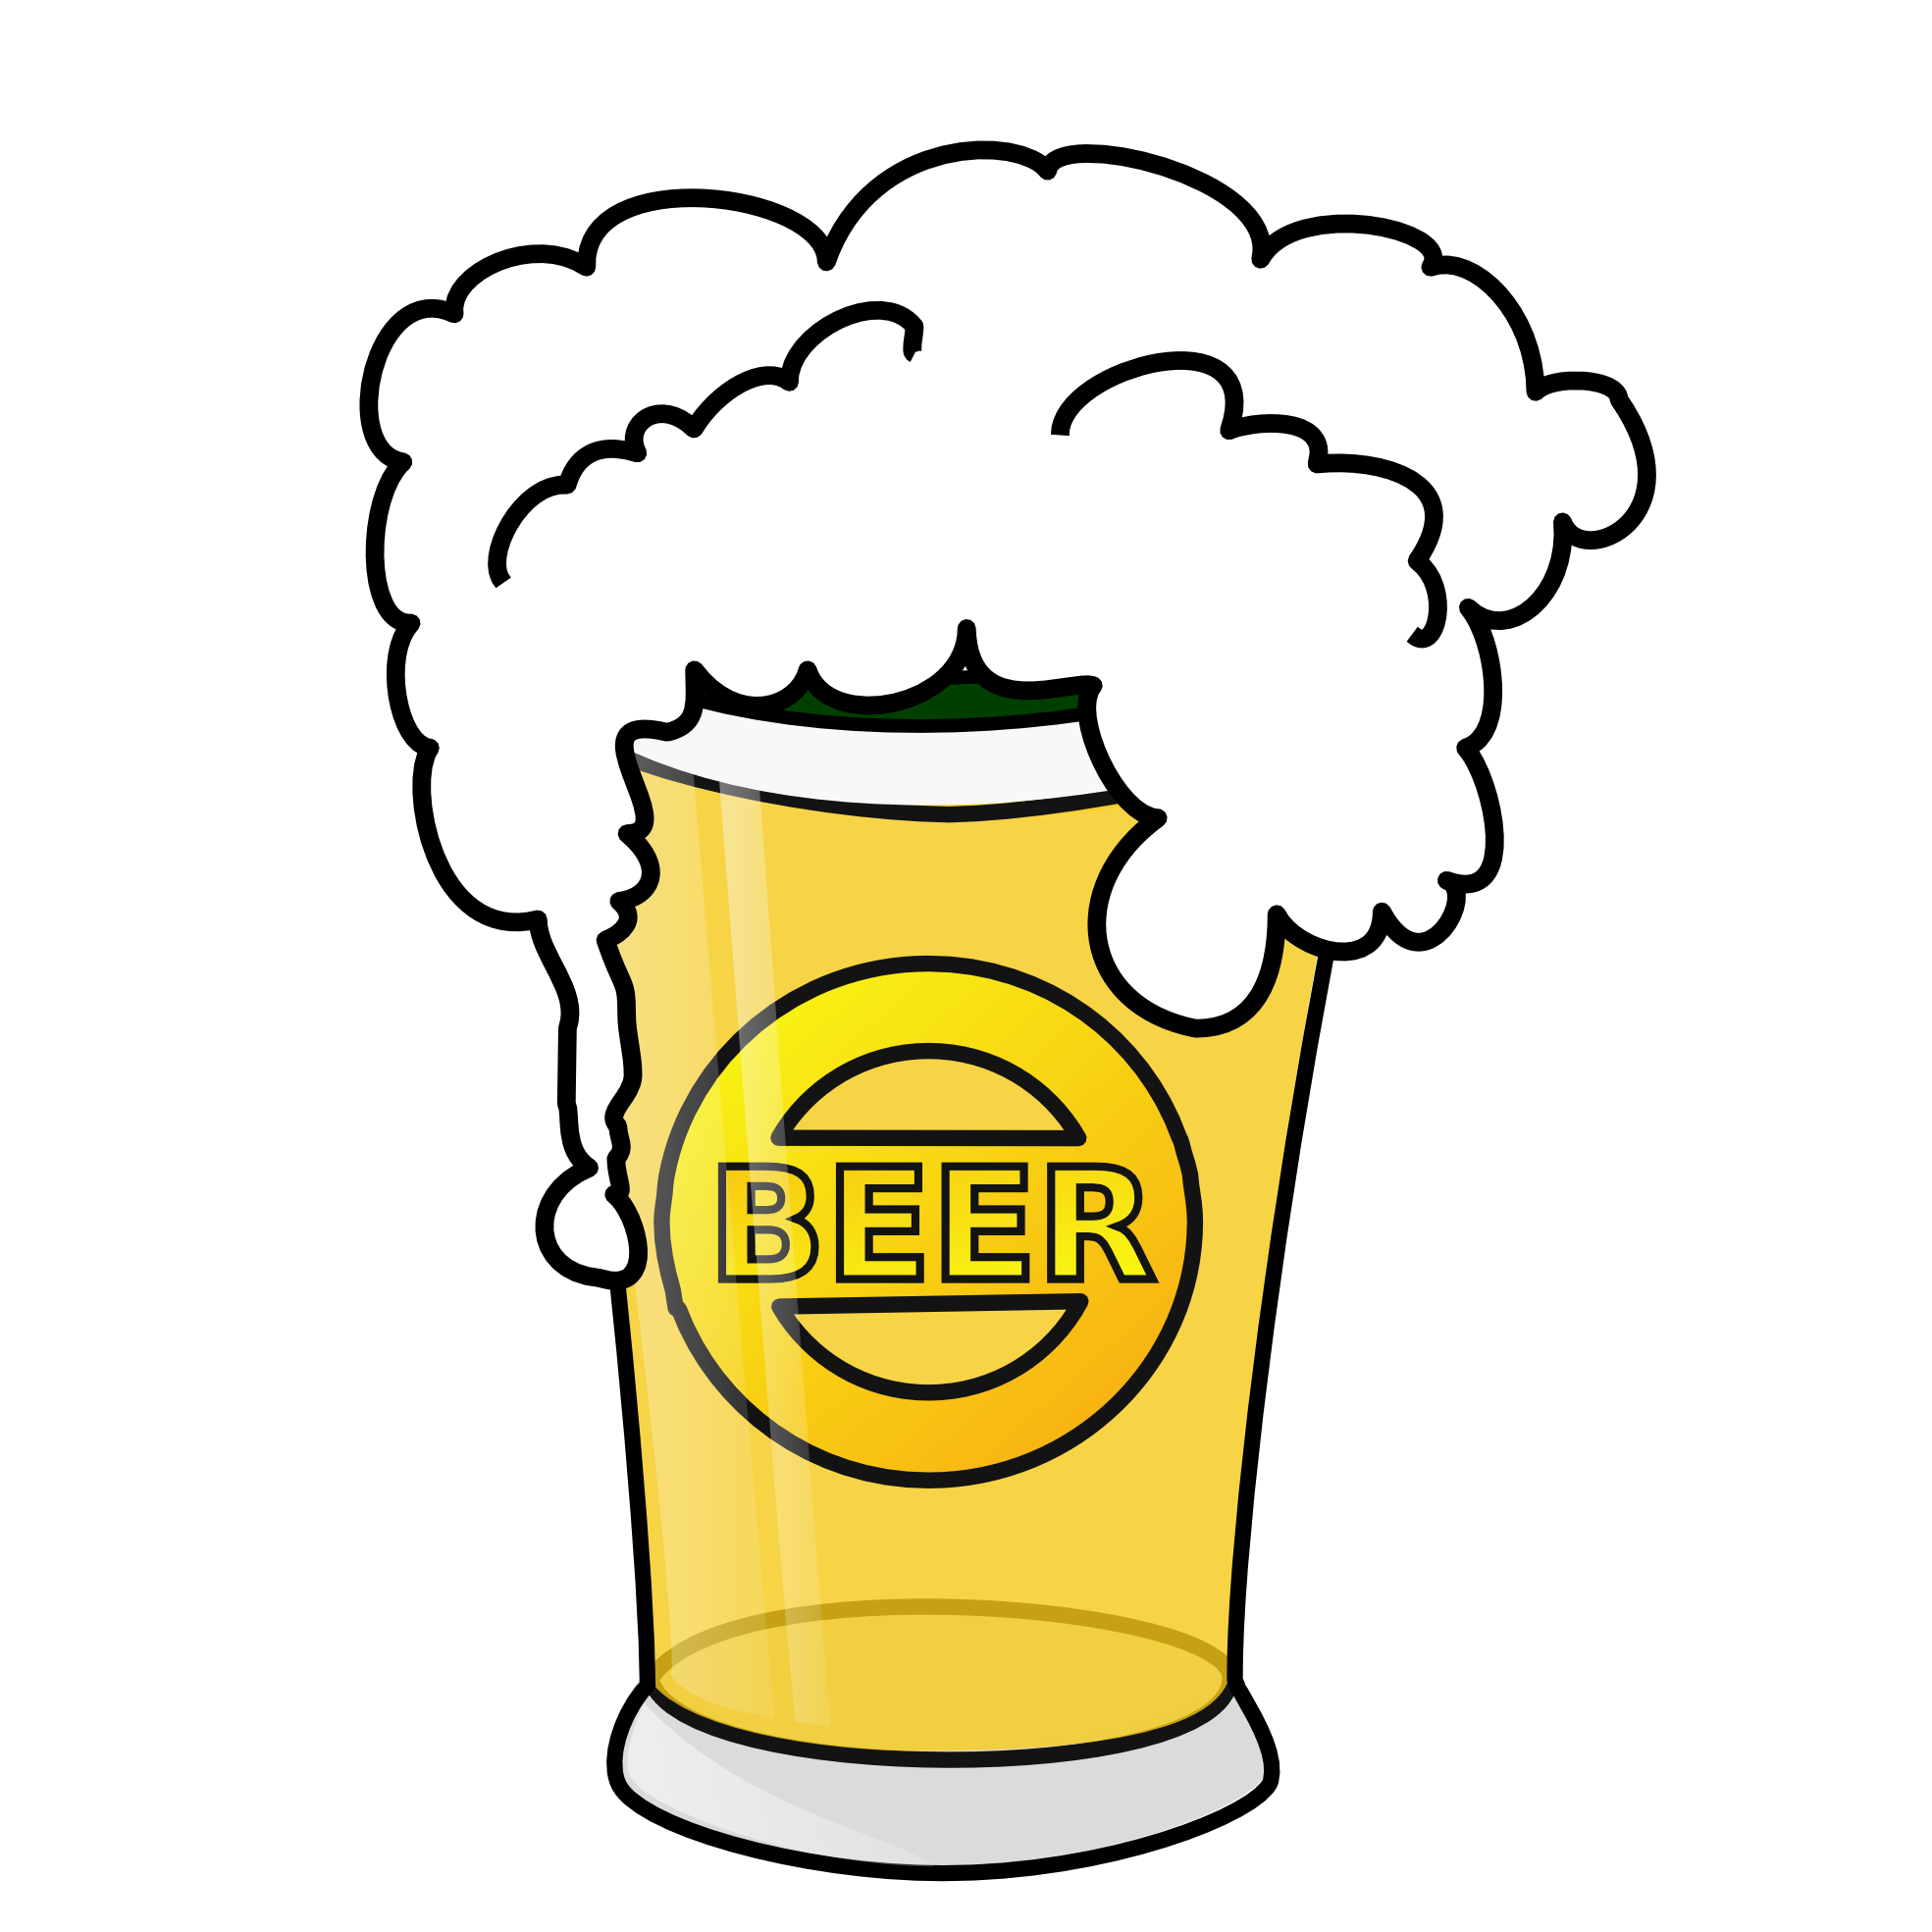 Beer Clip Art Free Images.